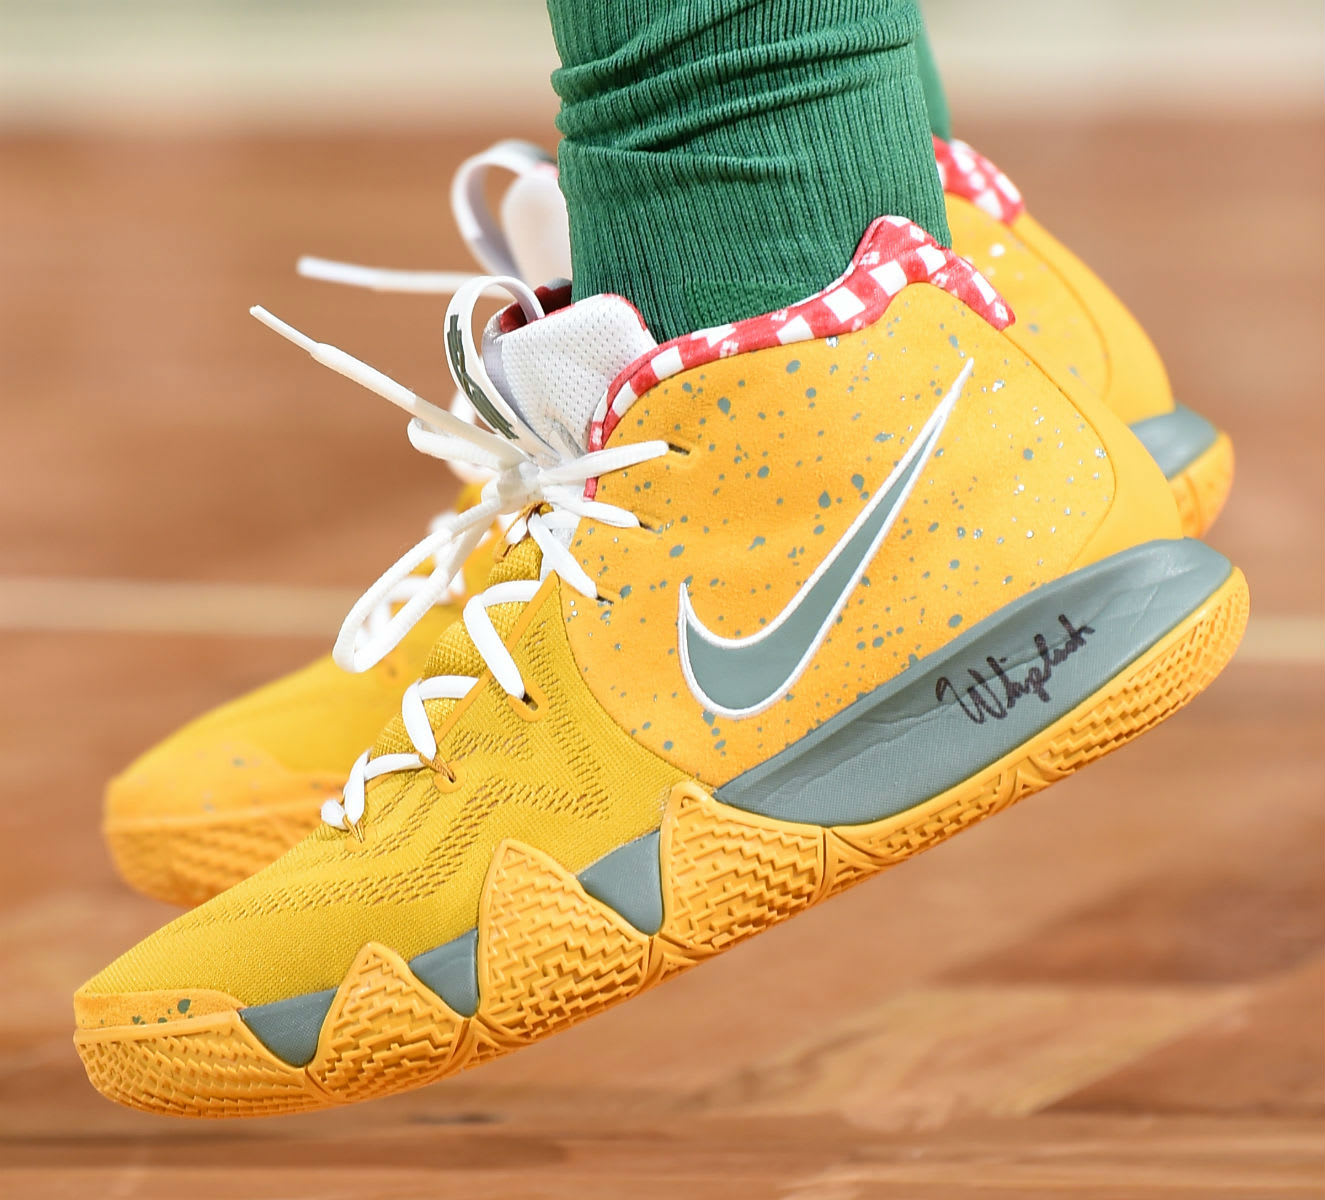 Kyrie Irving Nike Kyrie 4 Yellow Lobster PE On-Foot